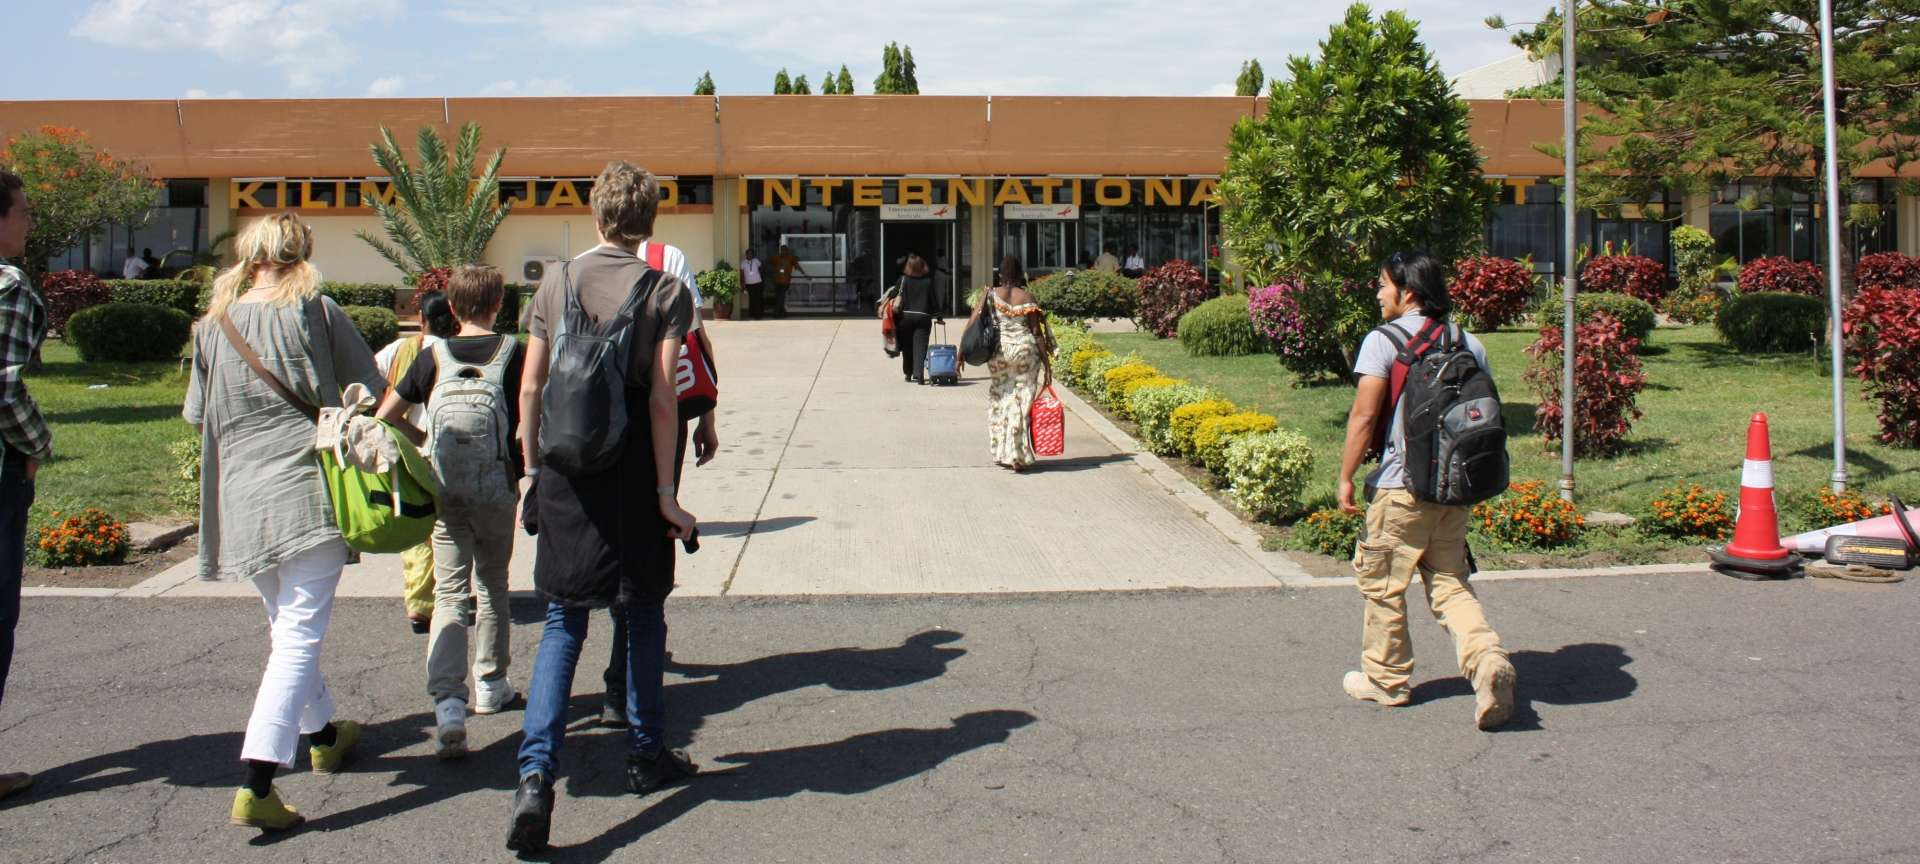 arrival_entrance_from_the_airfield_to_kilimanjaro_international_airport__1920x864.jpg